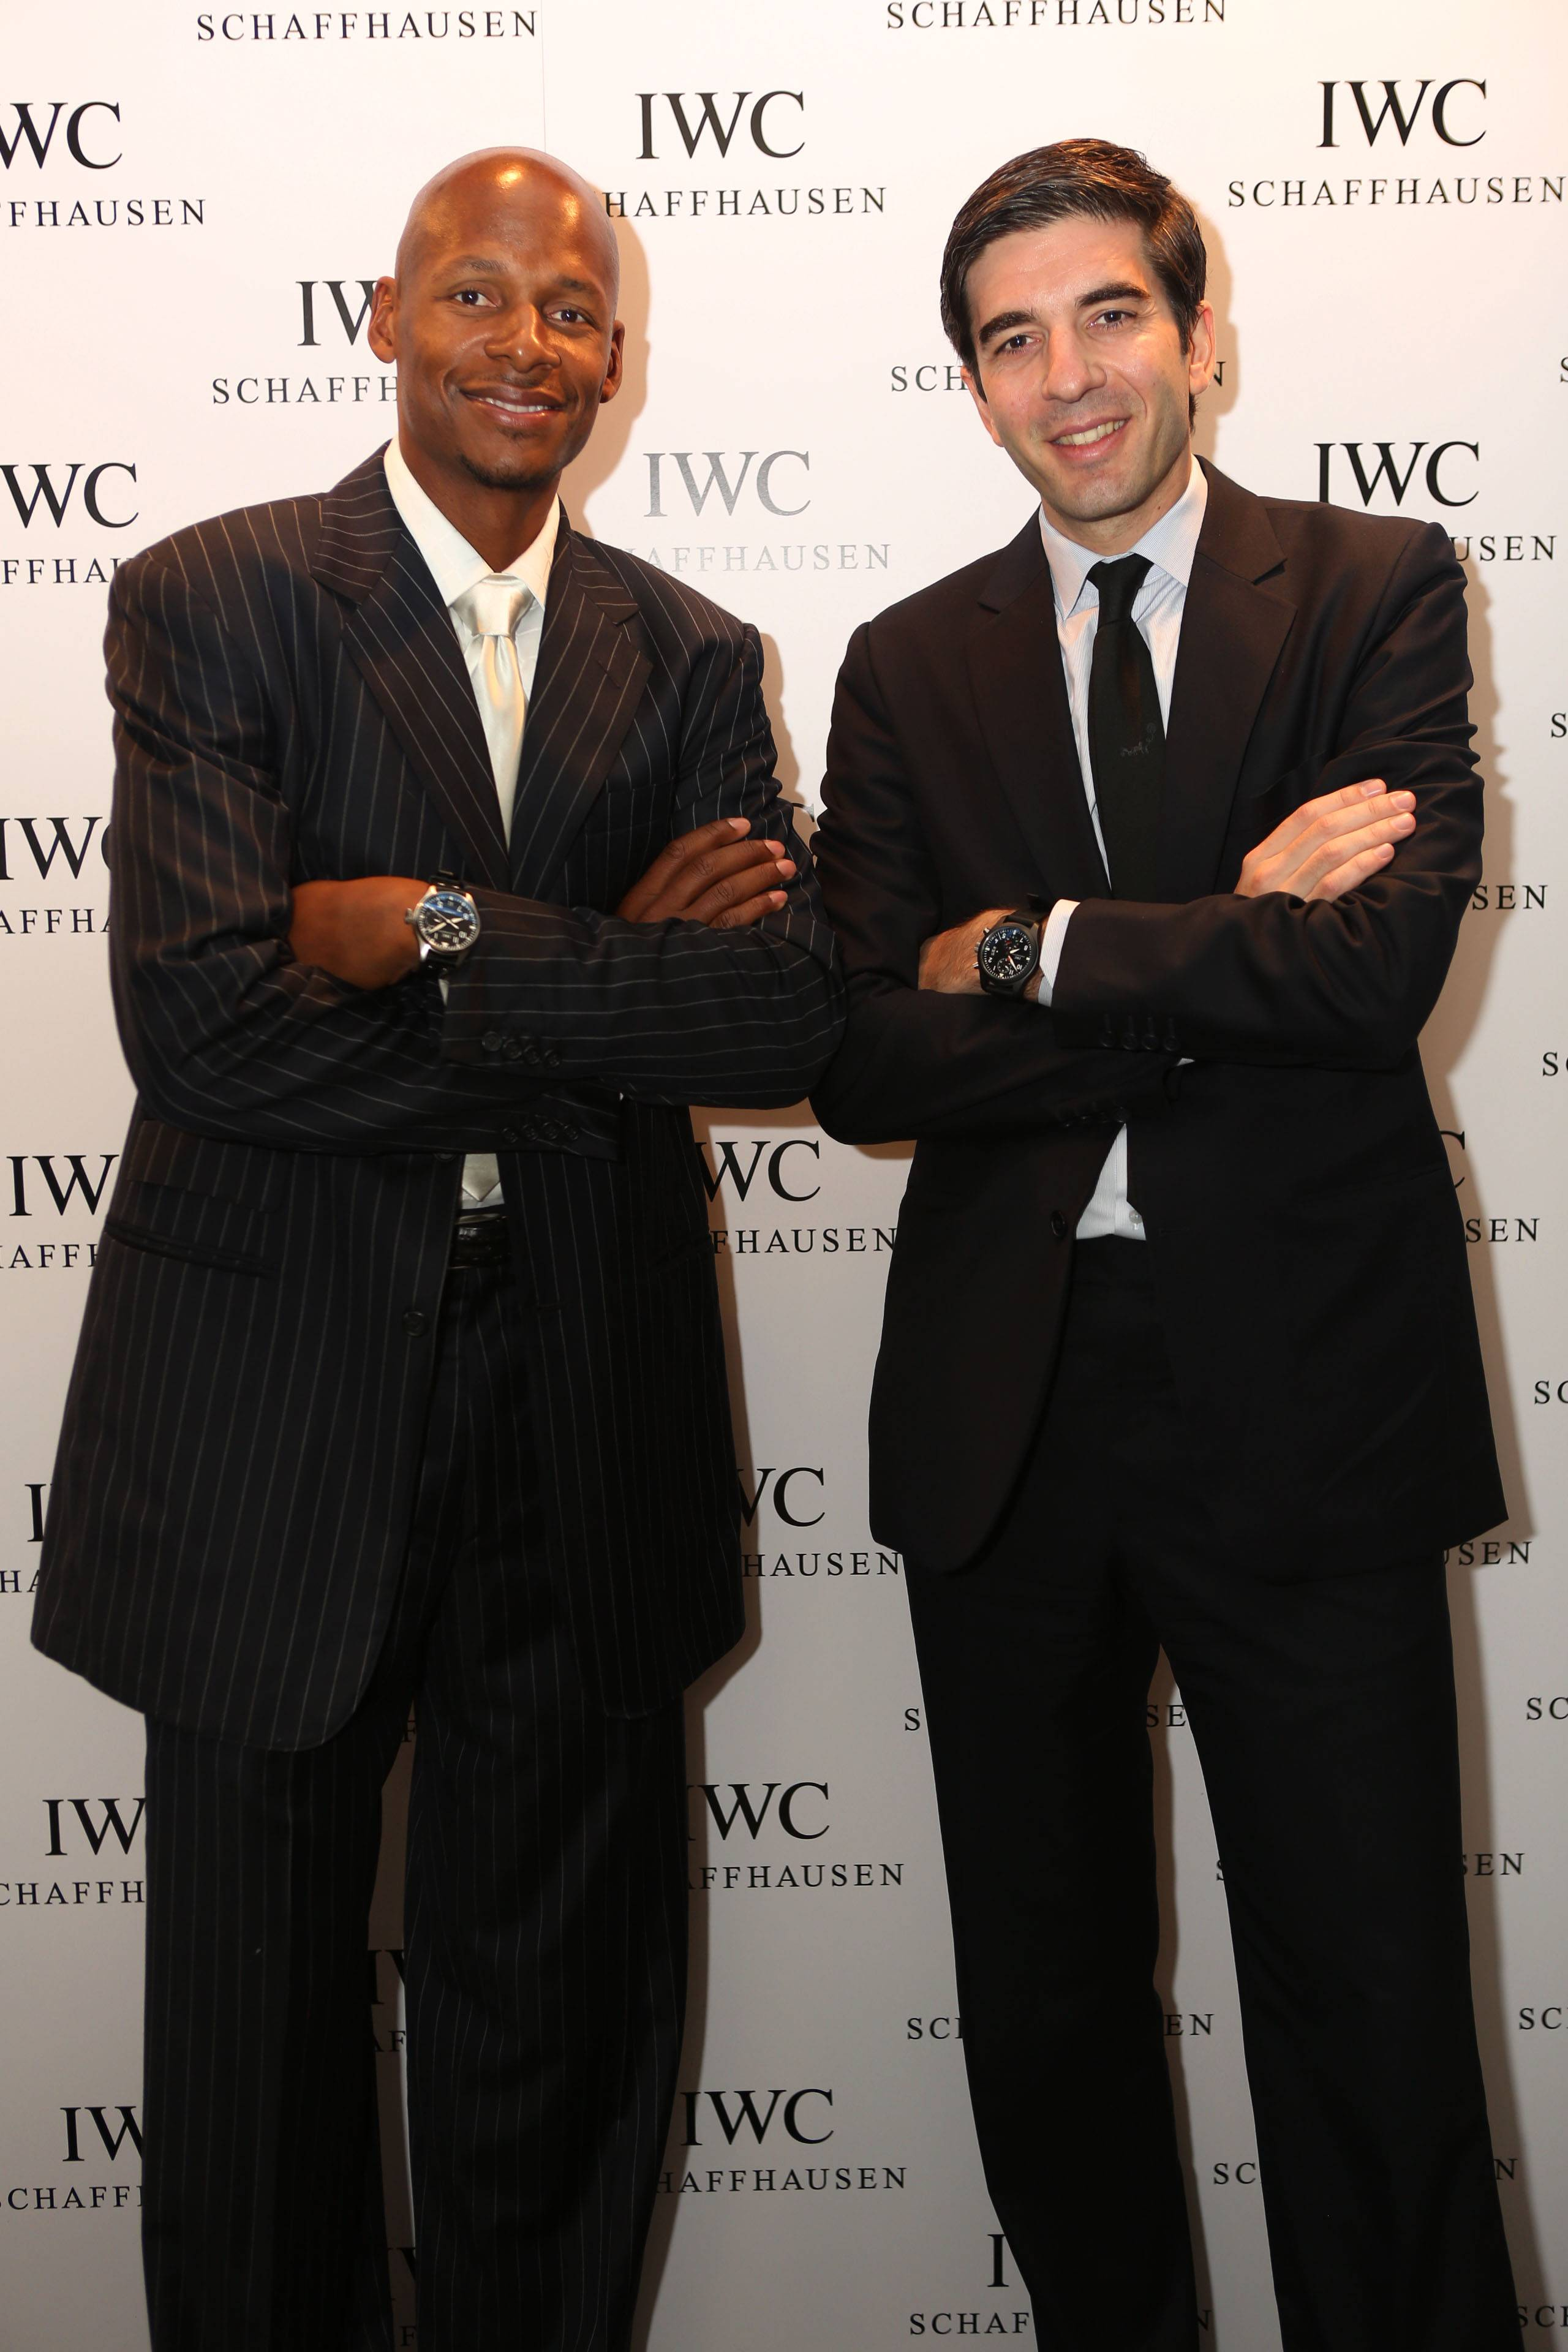 IWC_BOUTIQUE_ MIAMI_OPENING_1